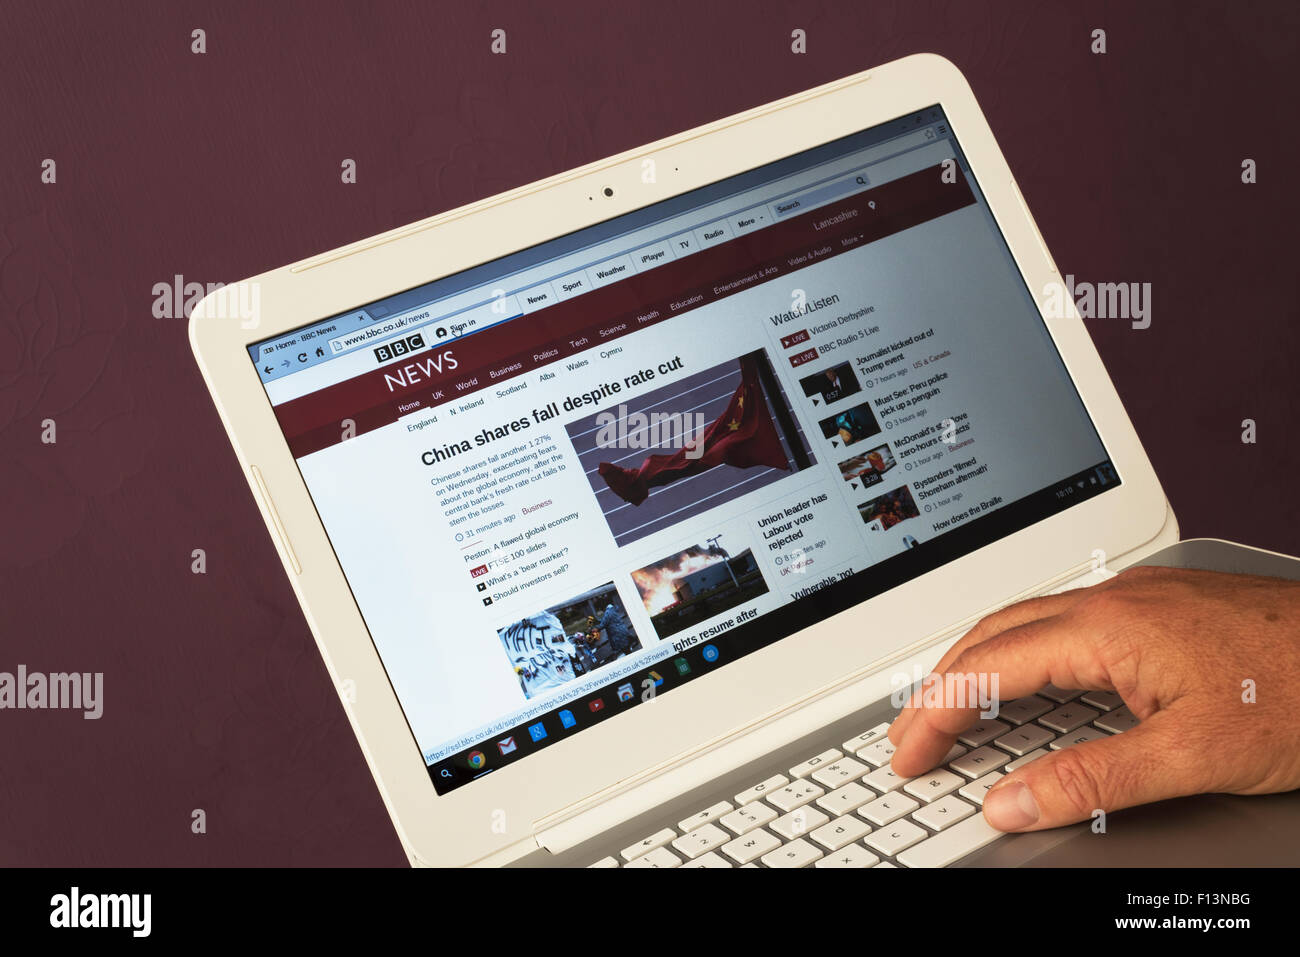 Website belonging to BBC News being viewed on a laptop computer - Stock Image